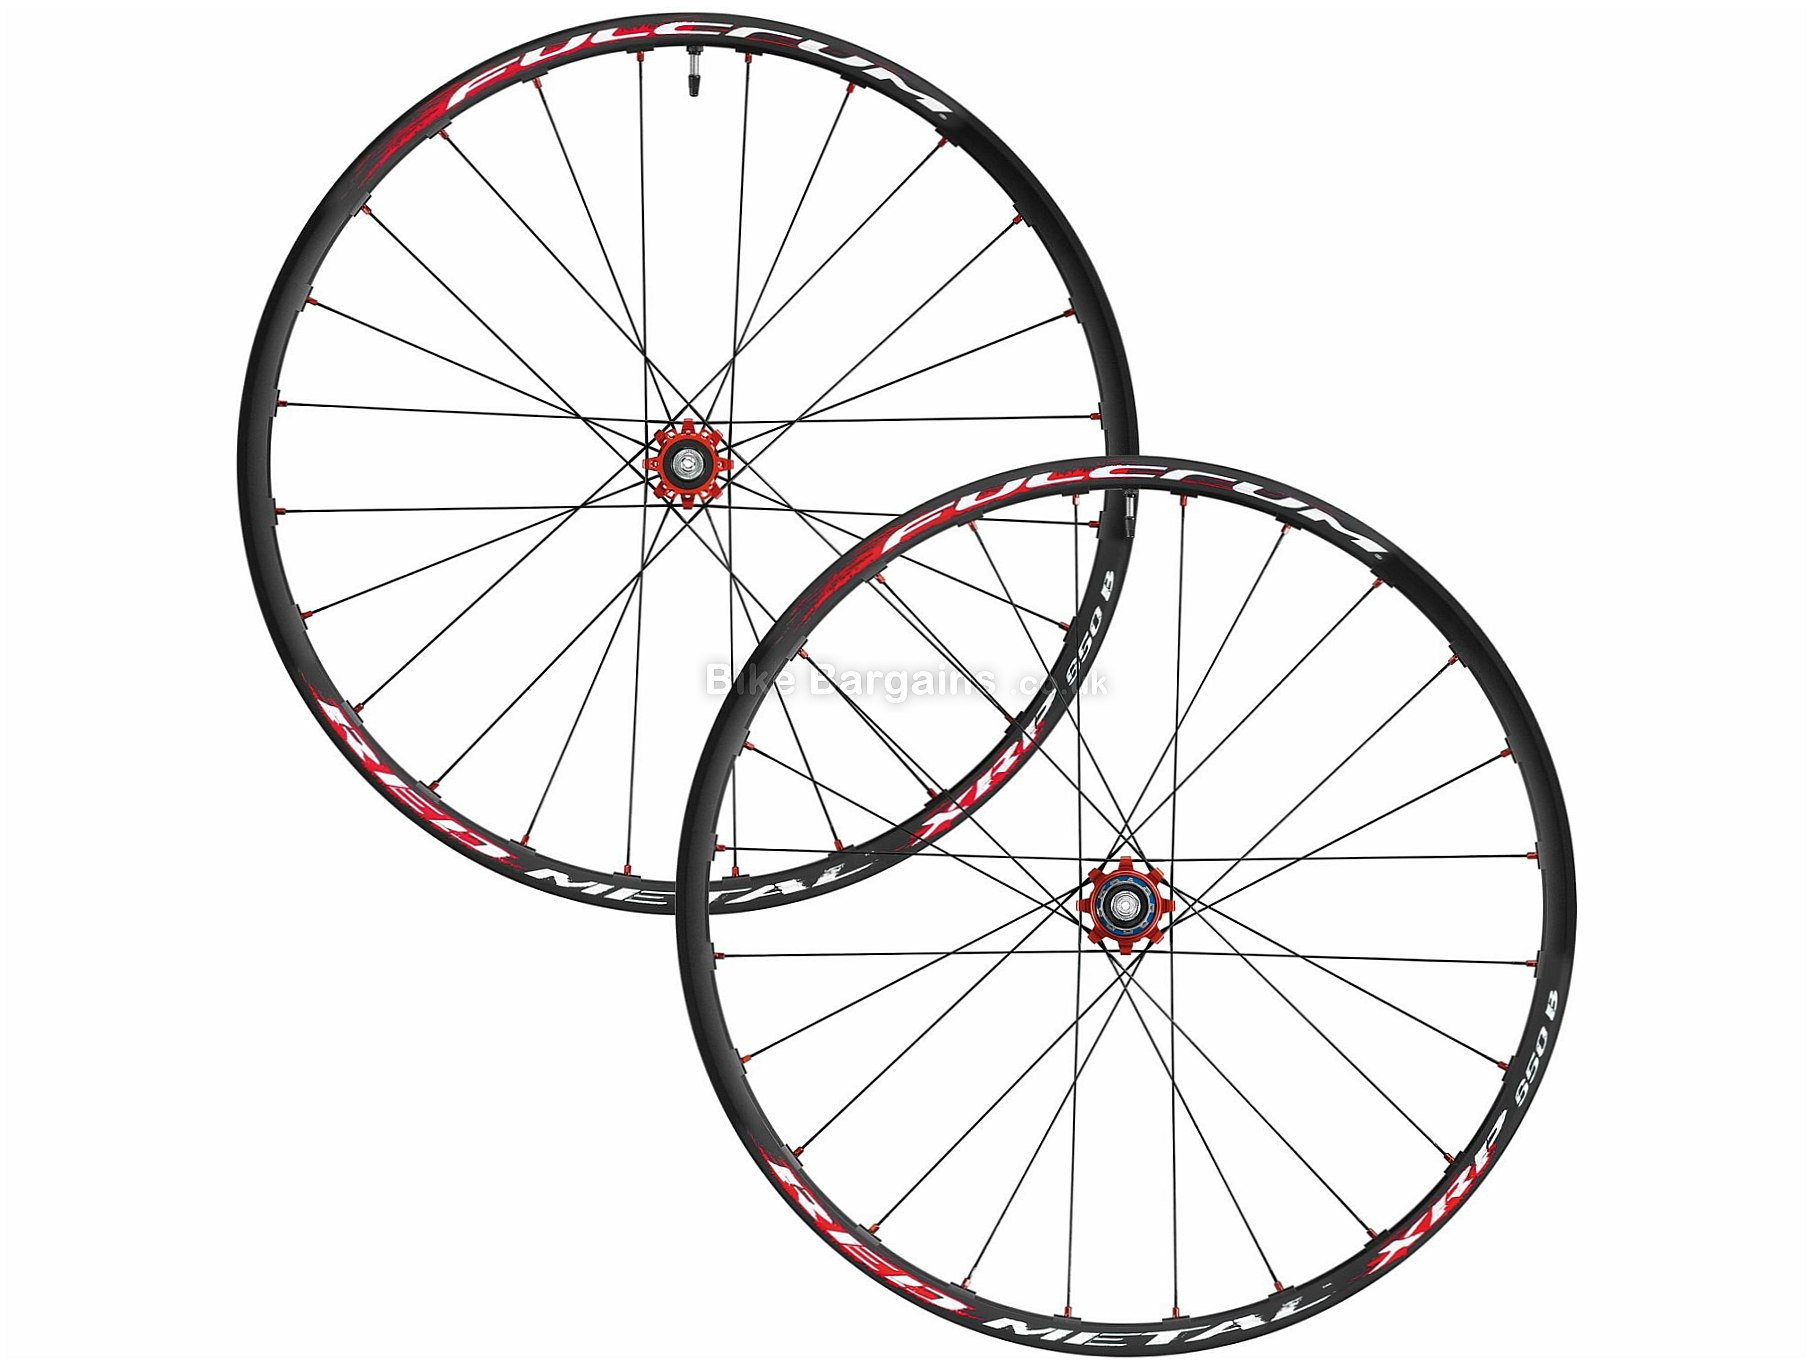 Fulcrum Red Metal 29 Xrp 6 Bolt Mtb Wheels Was Sold For